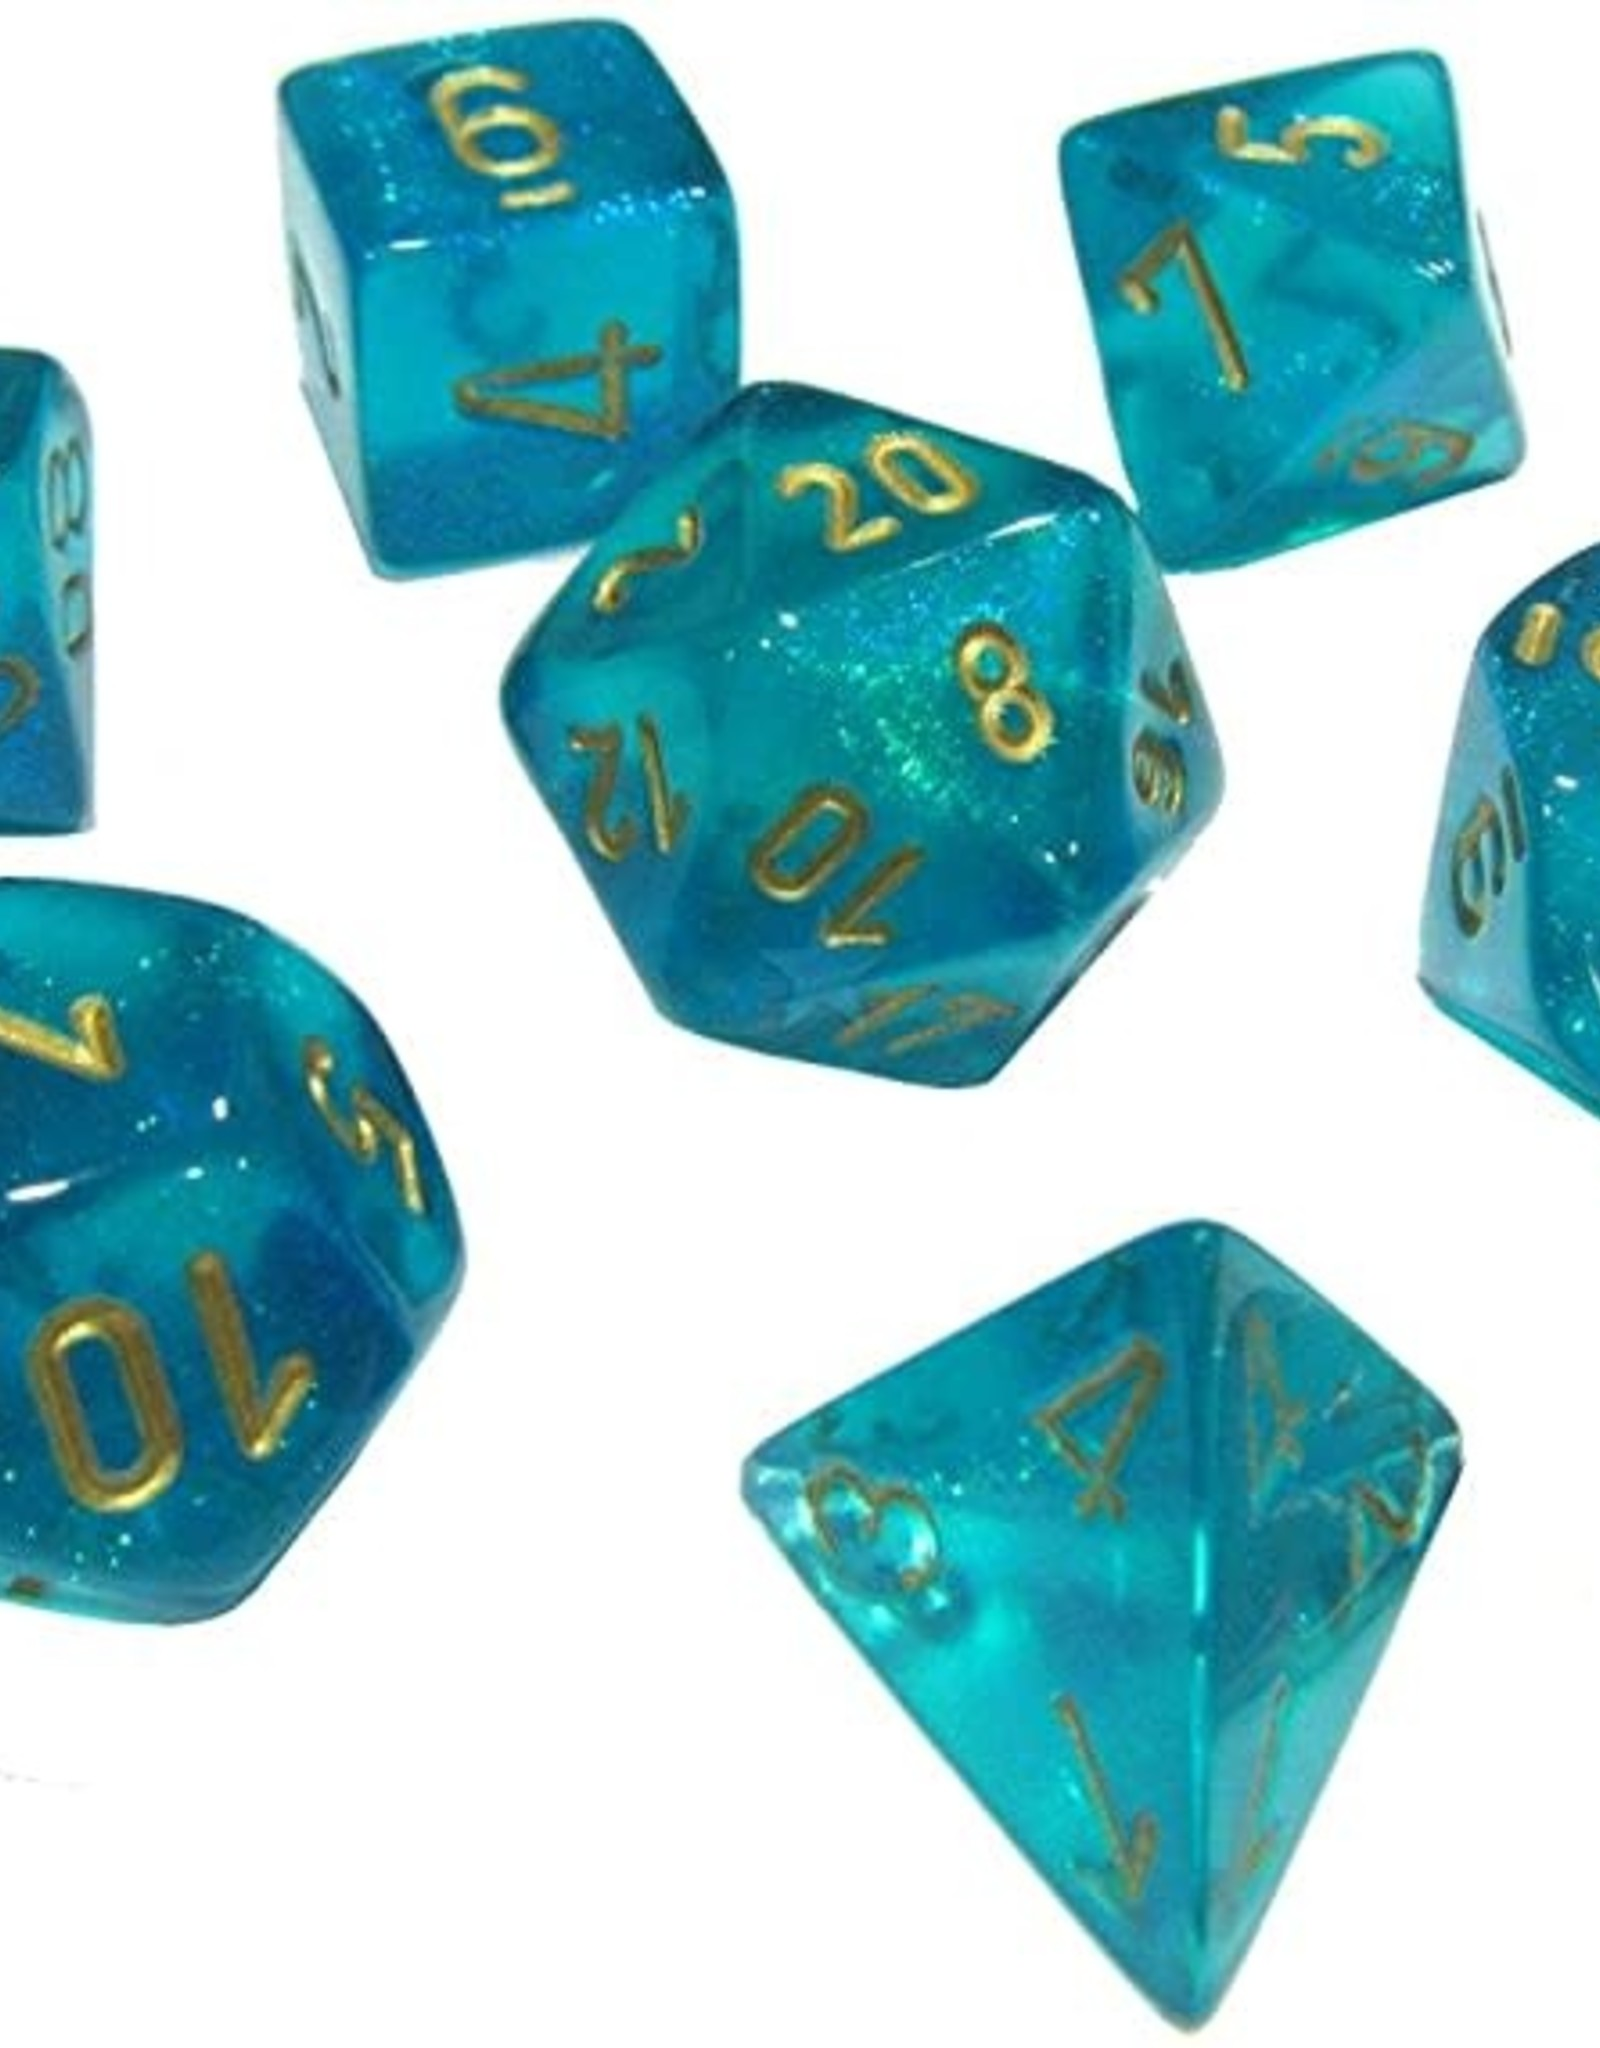 Chessex Borealis Poly 7 set: Teal w/ Gold